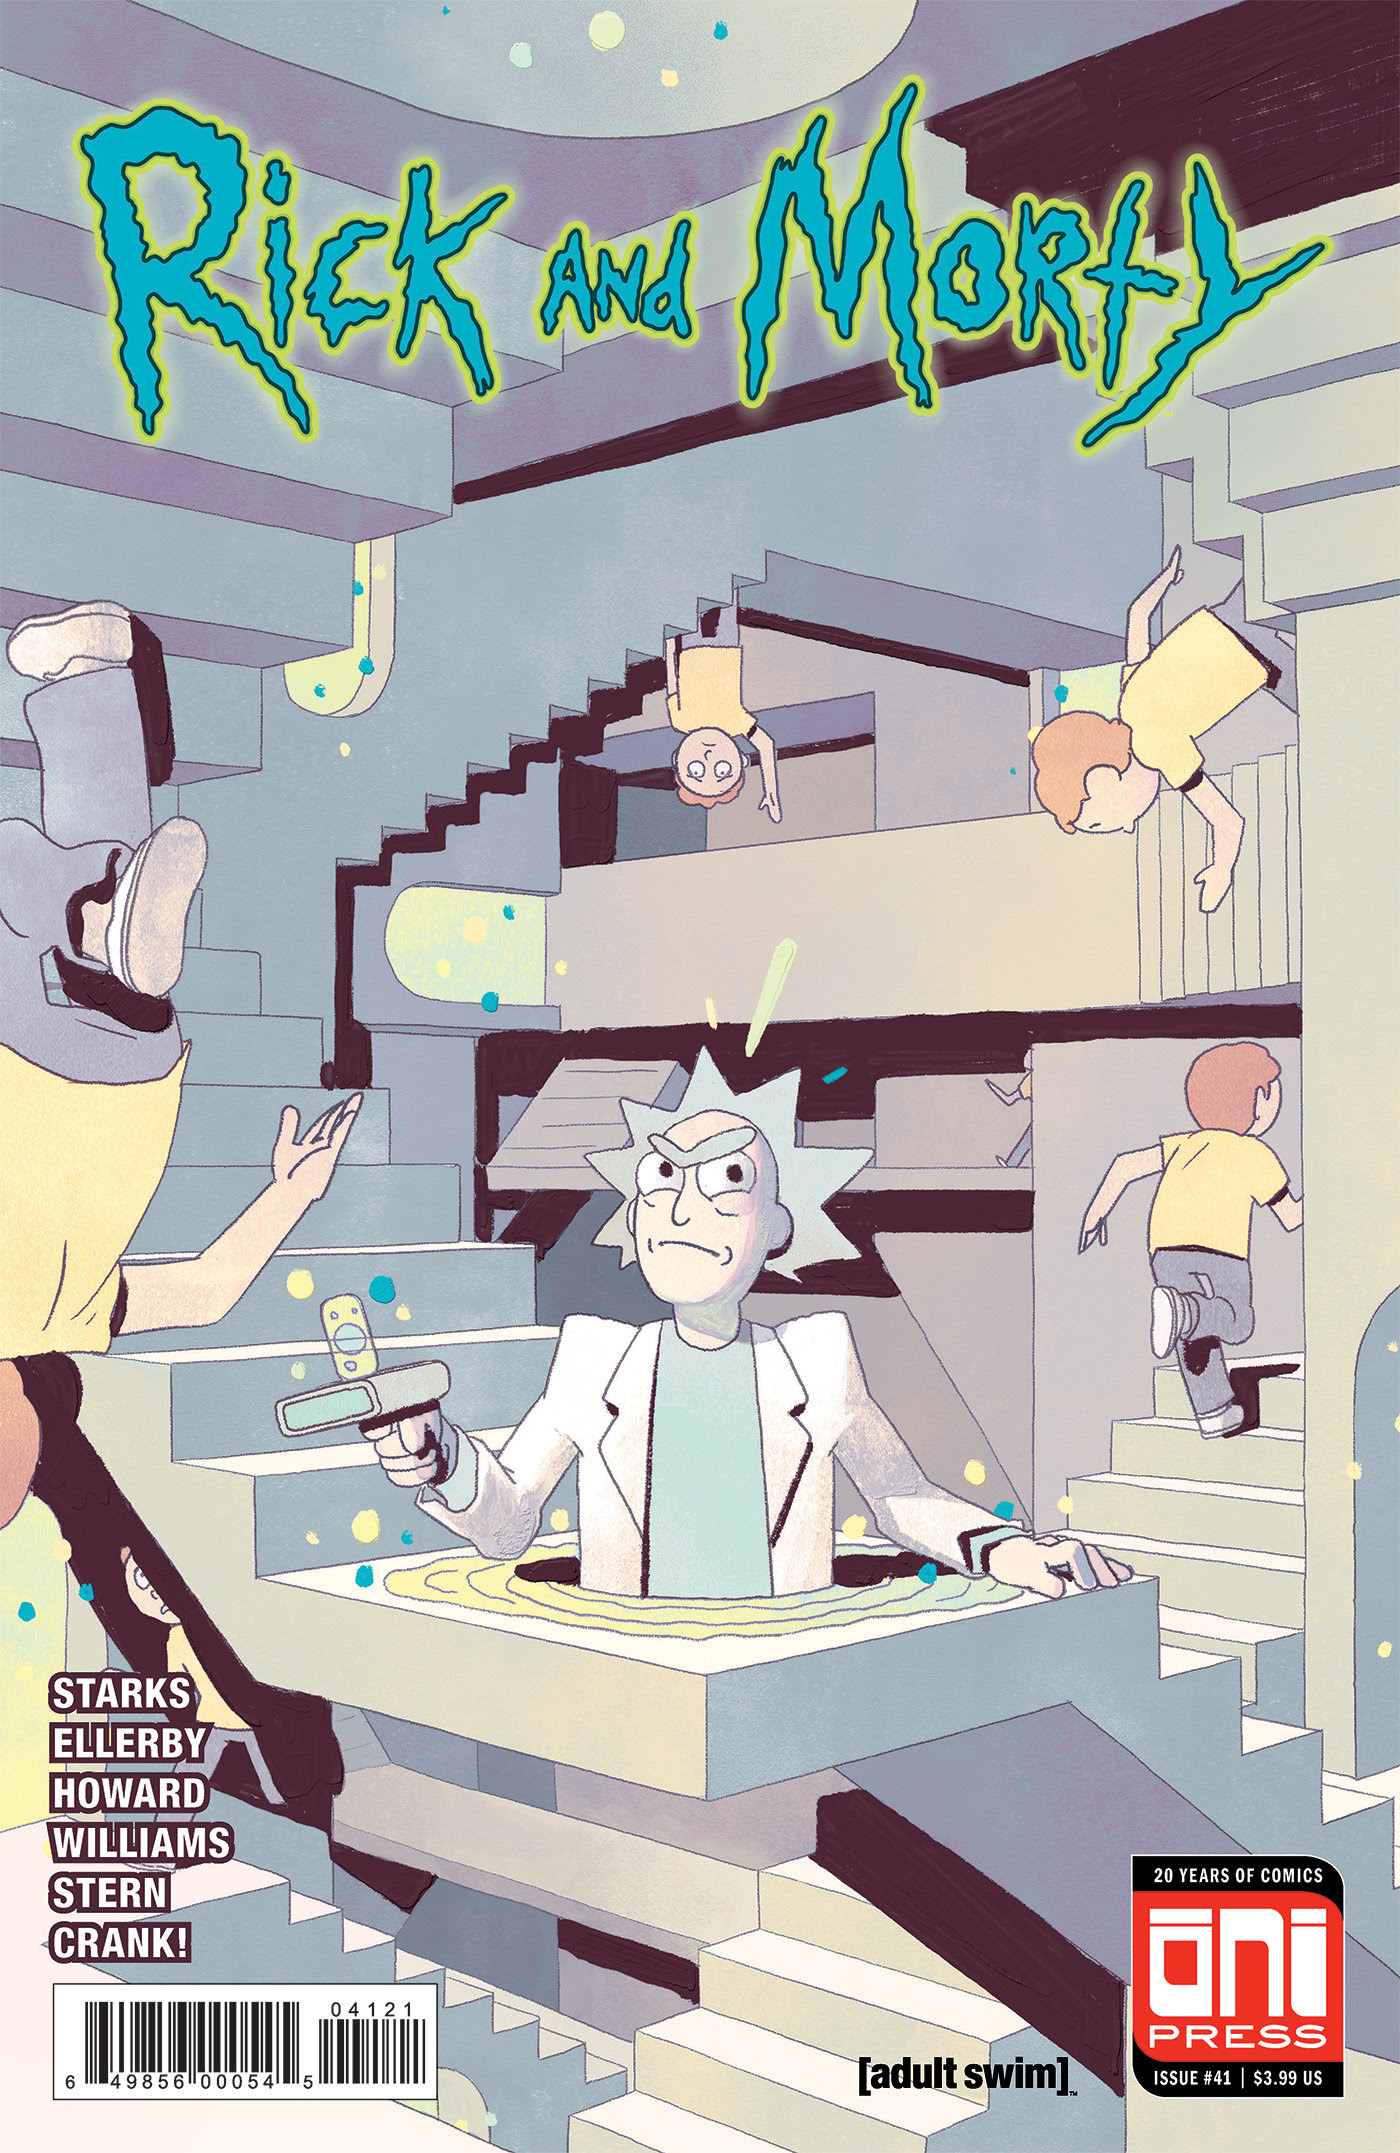 Rick and Morty #41 Review